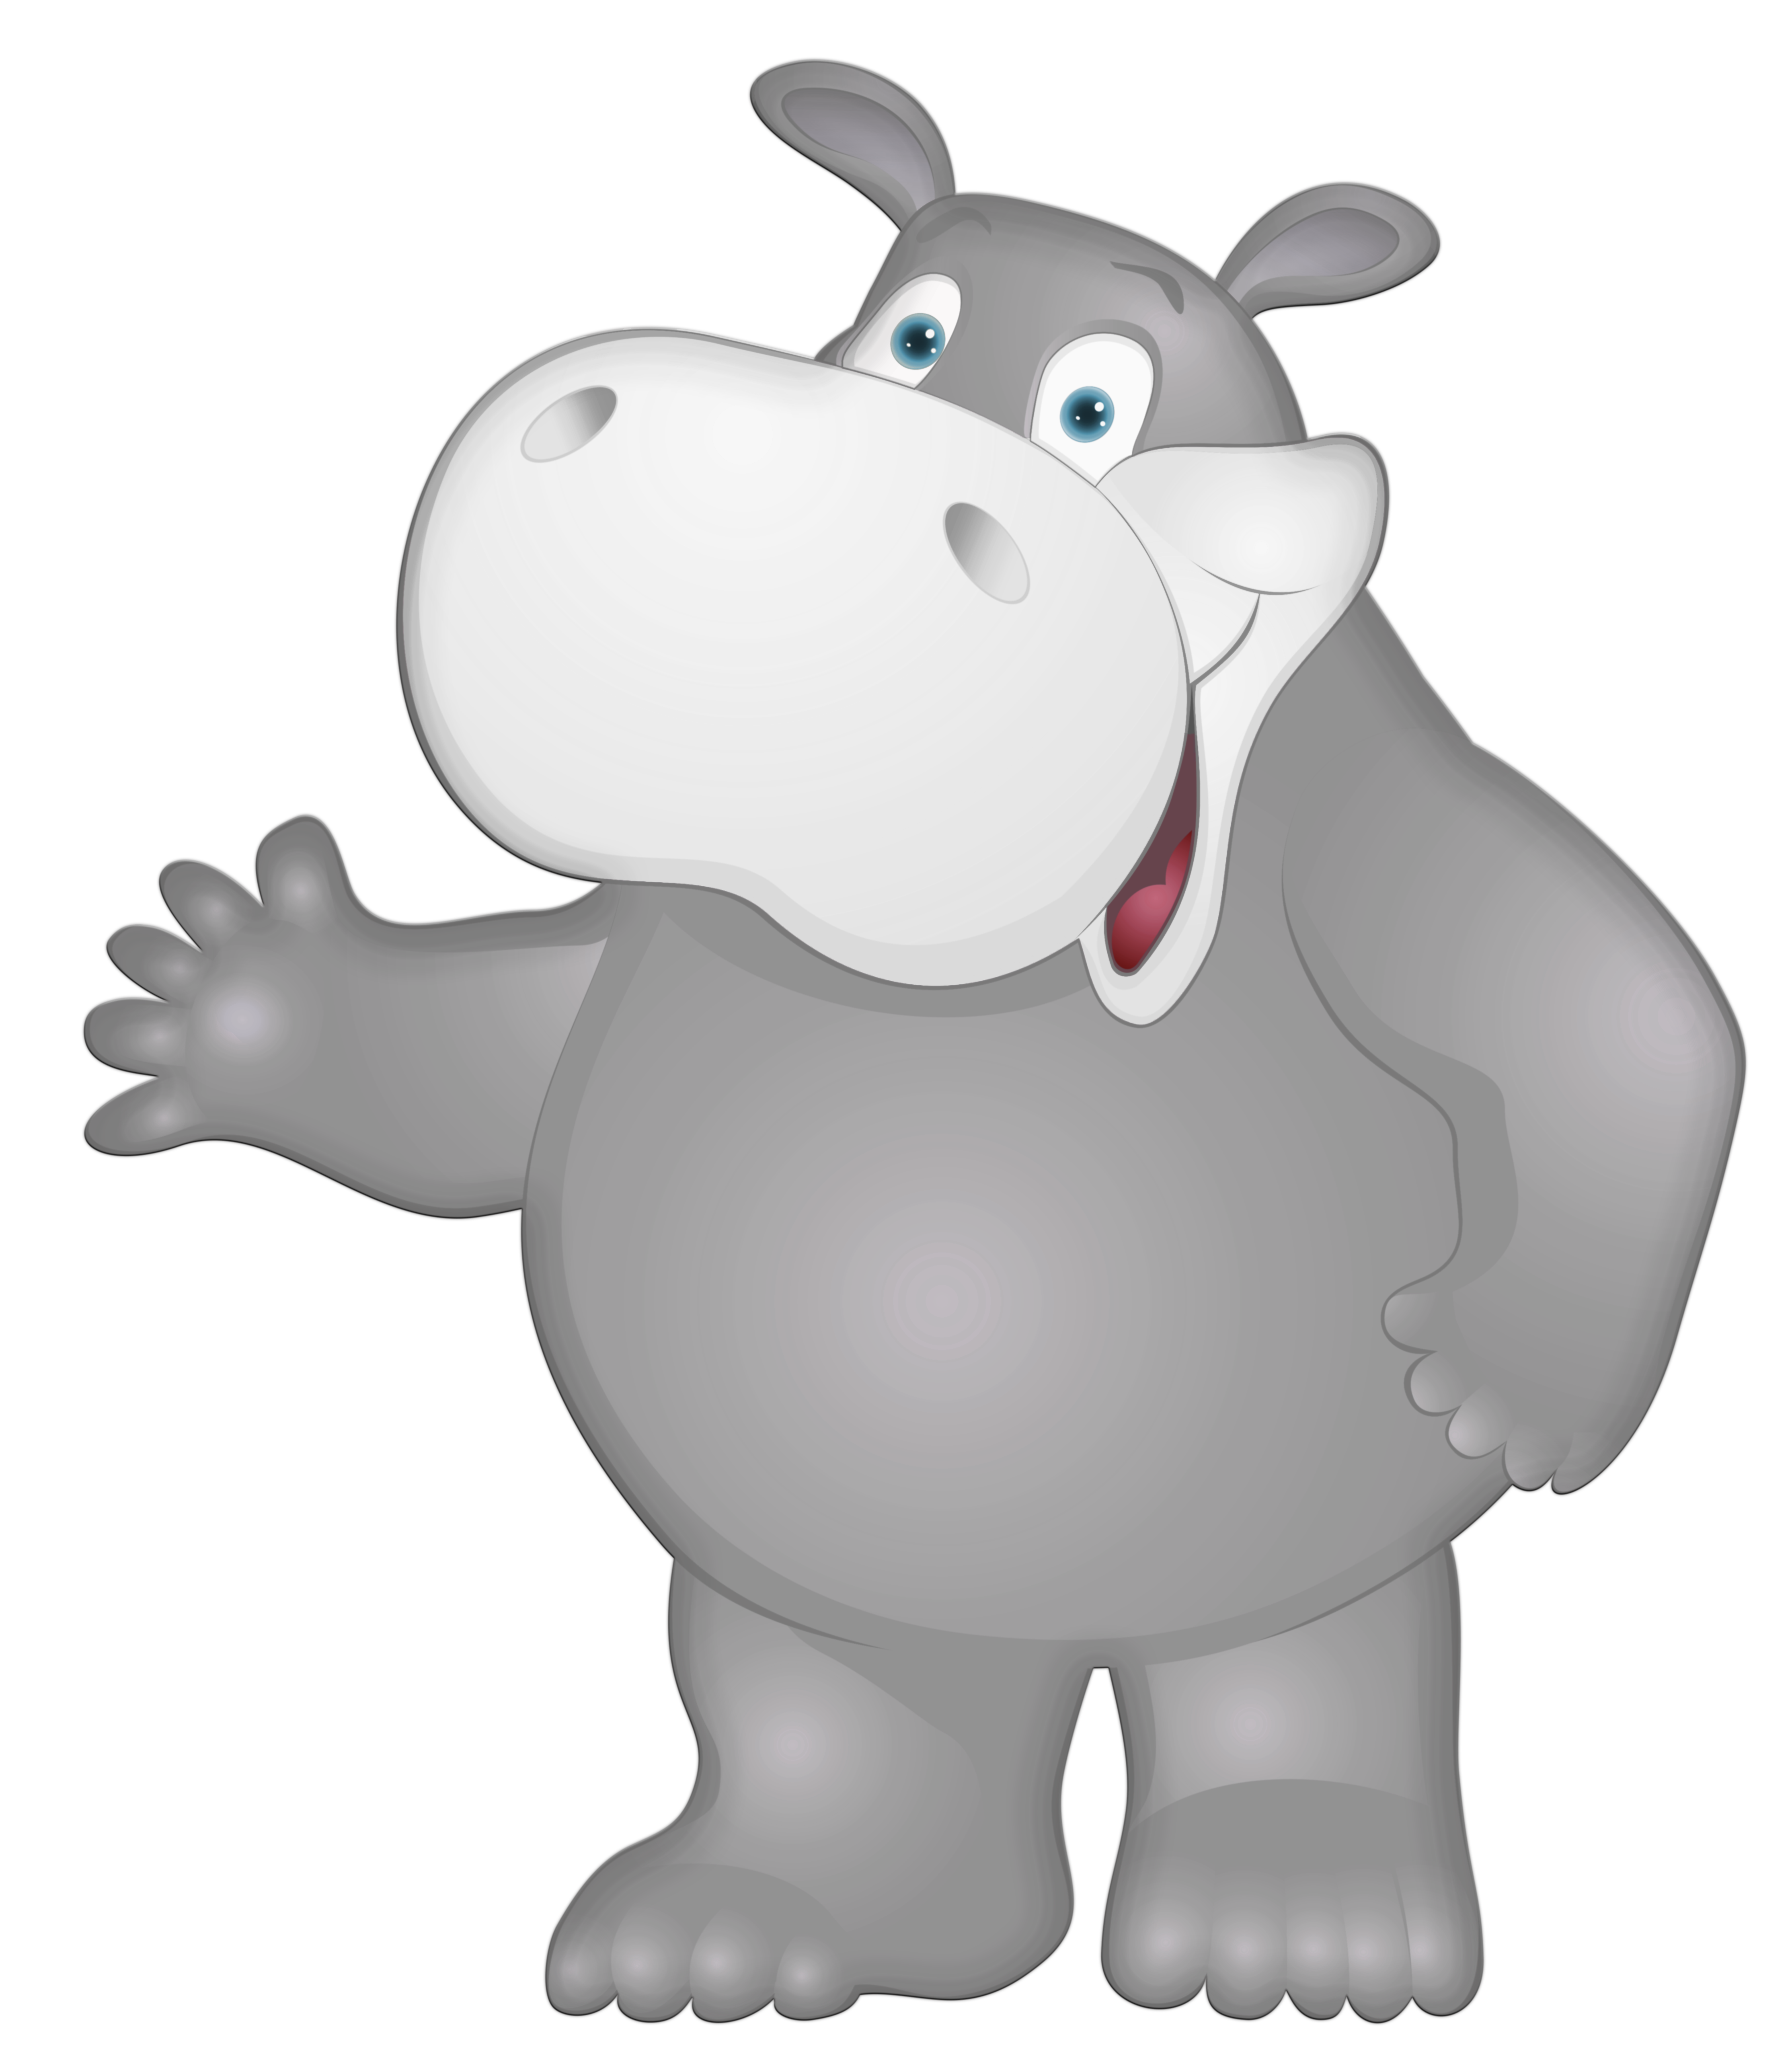 Hippopotamus clipart transparent background. Hippo png gallery yopriceville